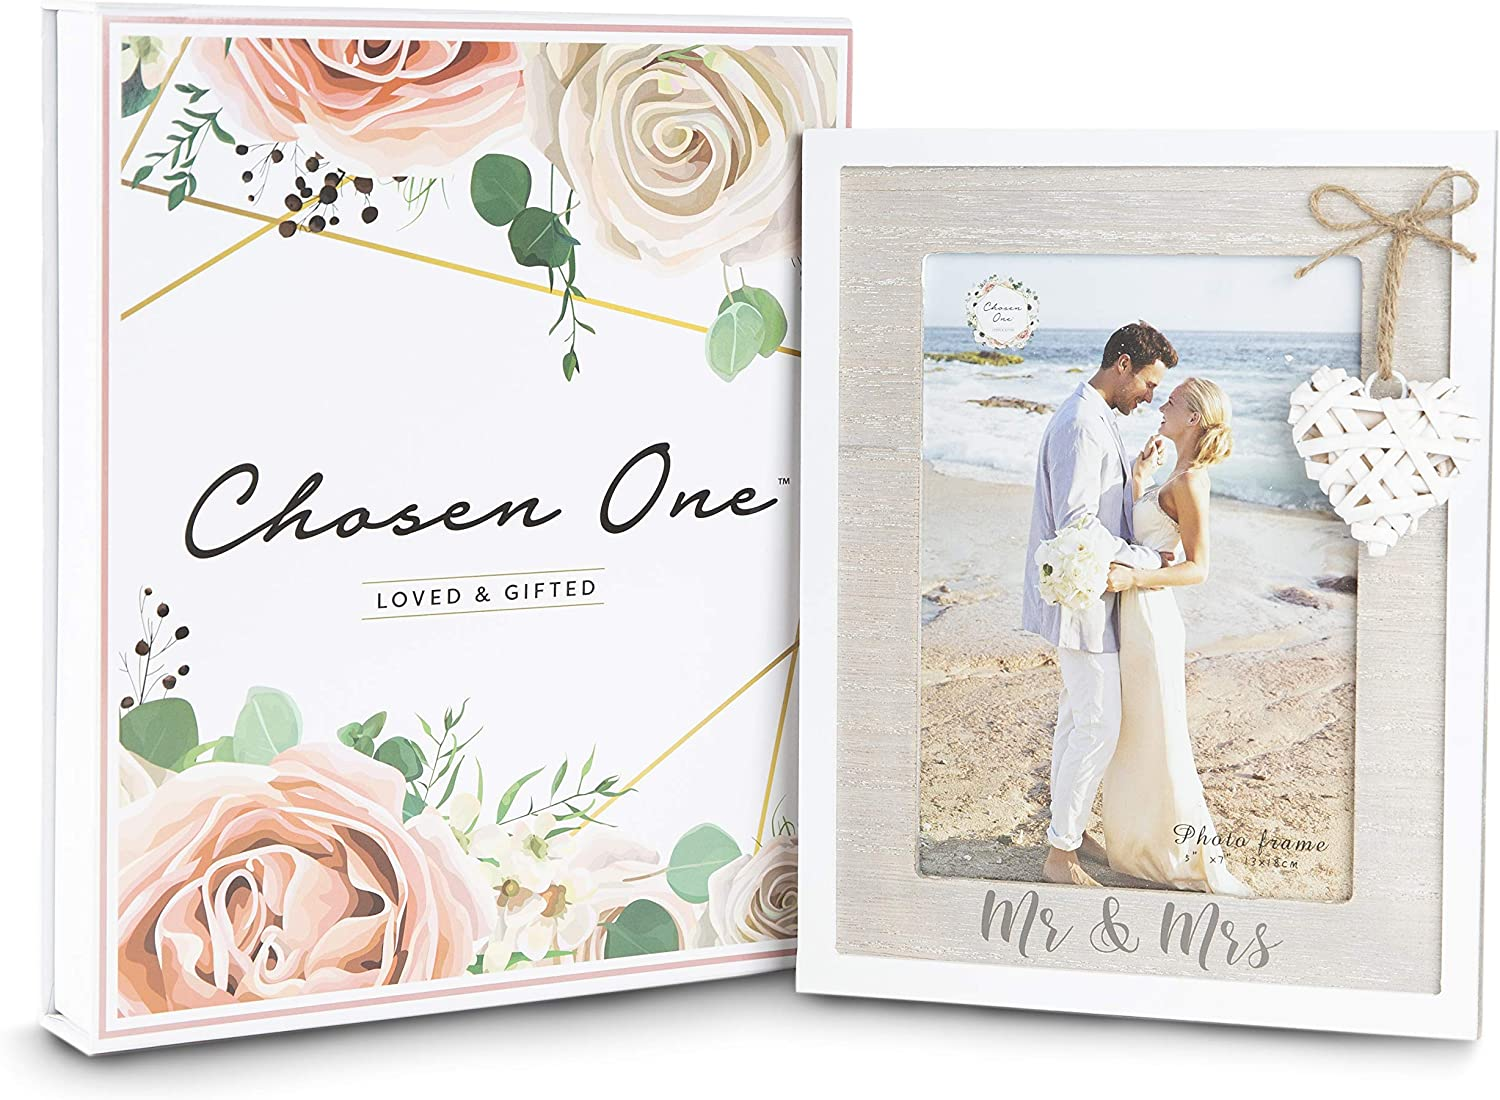 Amazon Com Mr Mrs 5x7 Picture Frame By Chosen One Rustic White Picture Frames With Heart Accent Bridal Shower Gifts Engagement Frame And Wedding Gifts For The Couple